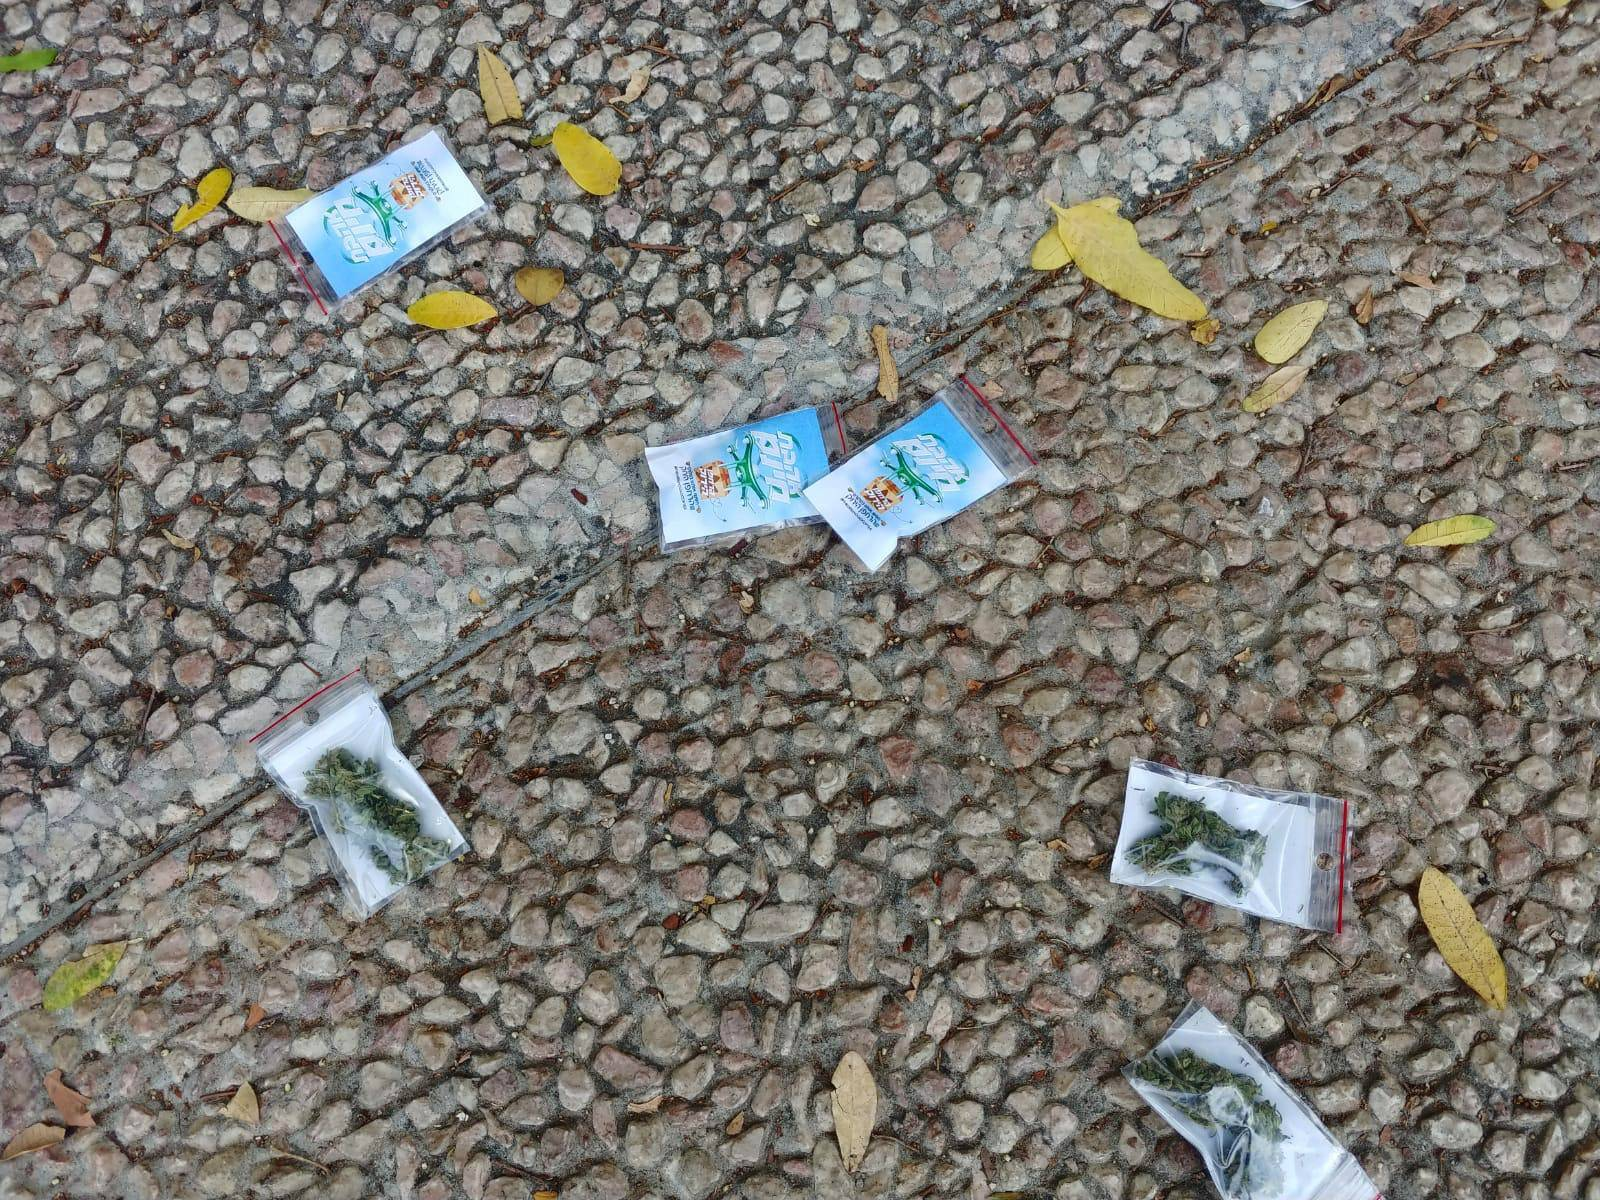 A high from on high? Drone drops weed baggies over Tel Aviv